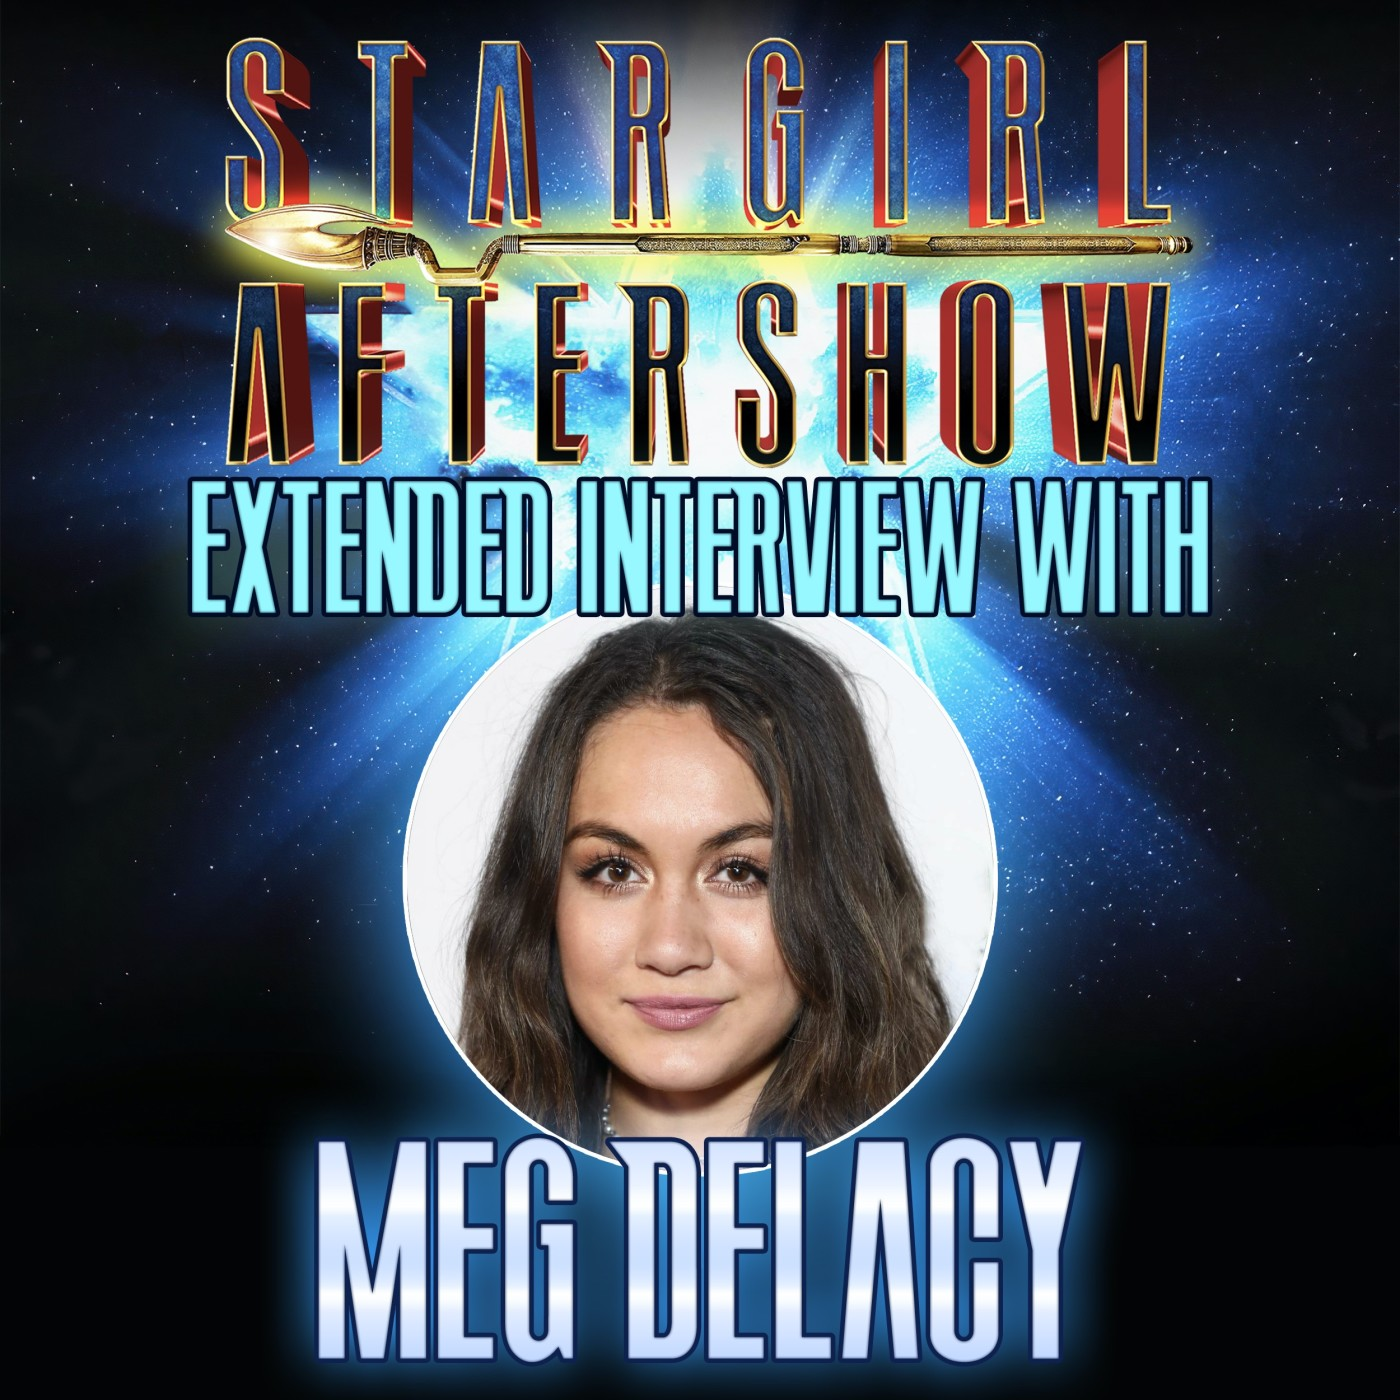 Meg Delacy Extended Interview